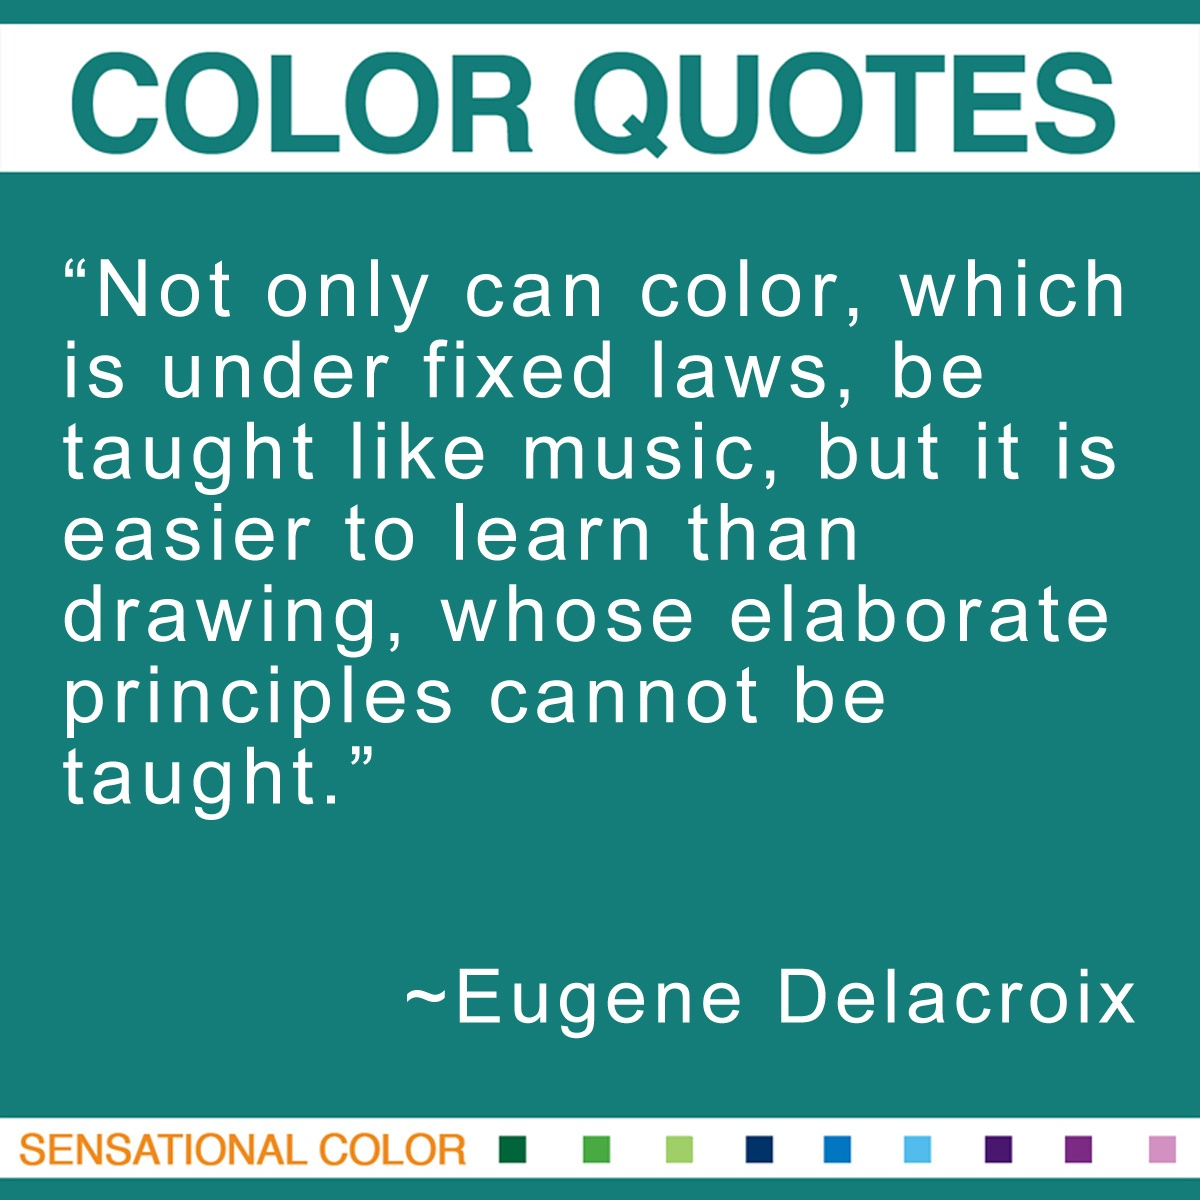 """Not only can color, which is under fixed laws, be taught like music, but it is easier to learn than drawing, whose elaborate principles cannot be taught."" - Eugene Delacroix"